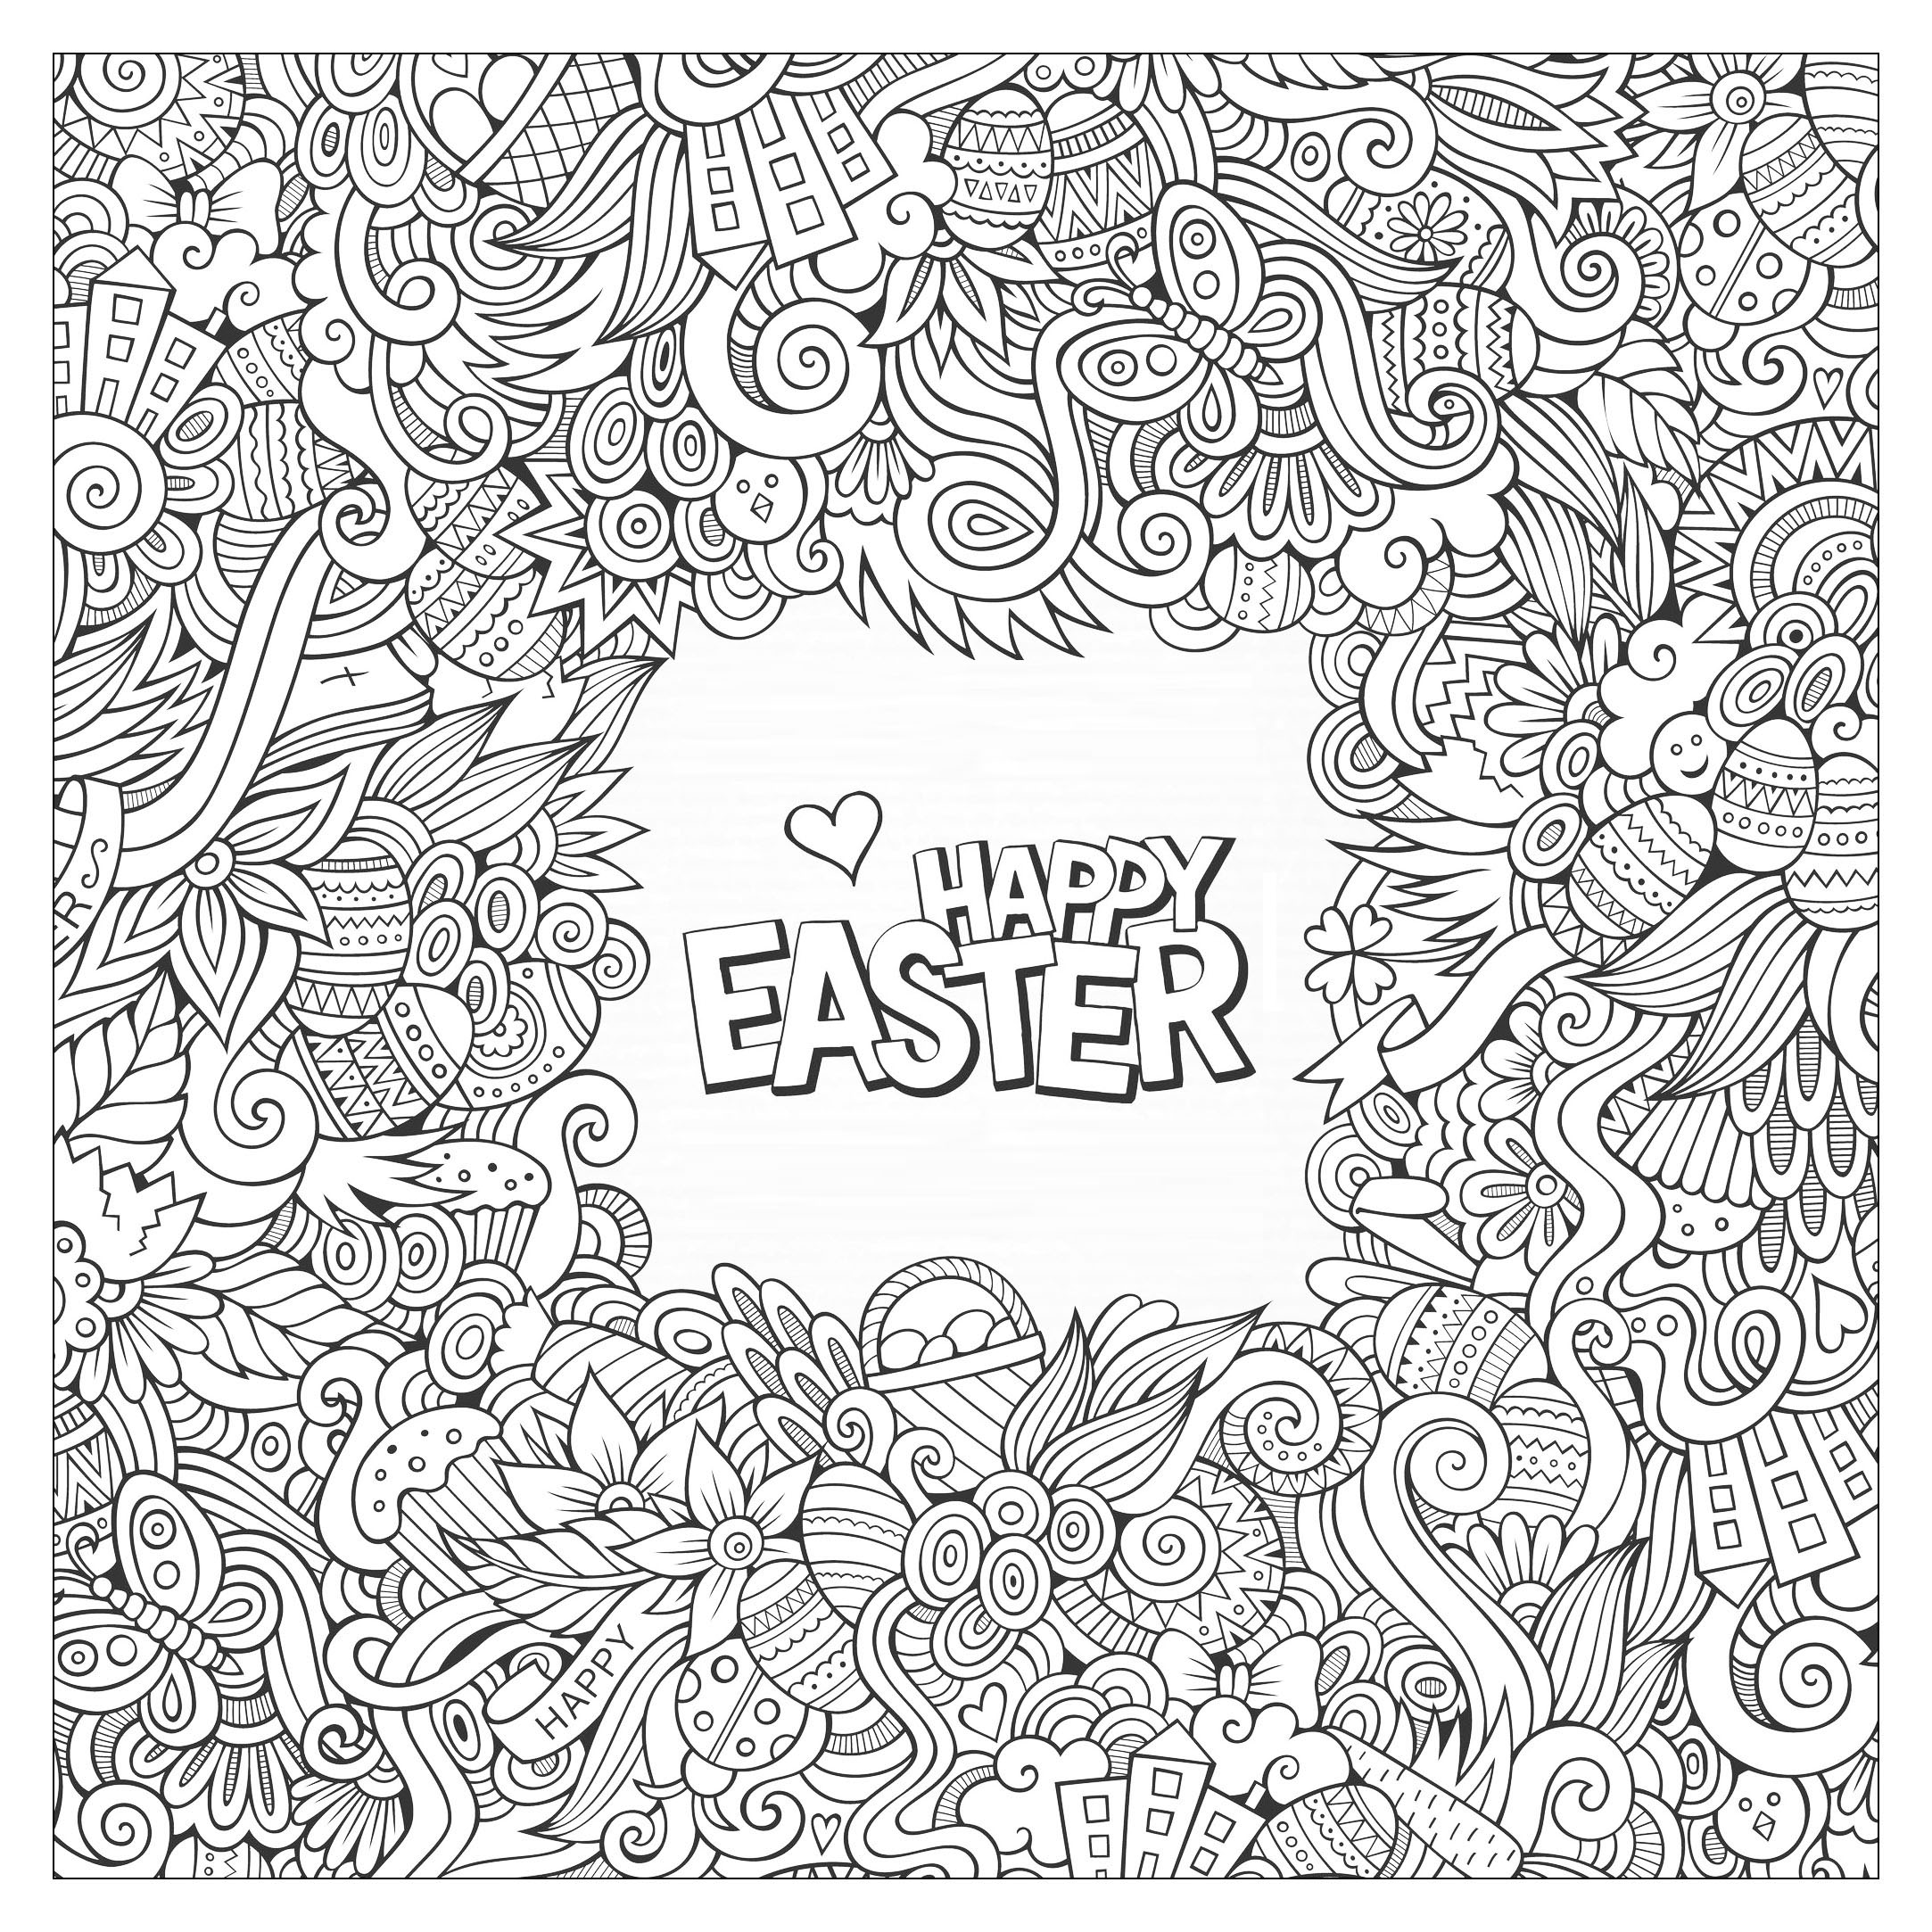 Easter Coloring Pages - Free and Printable